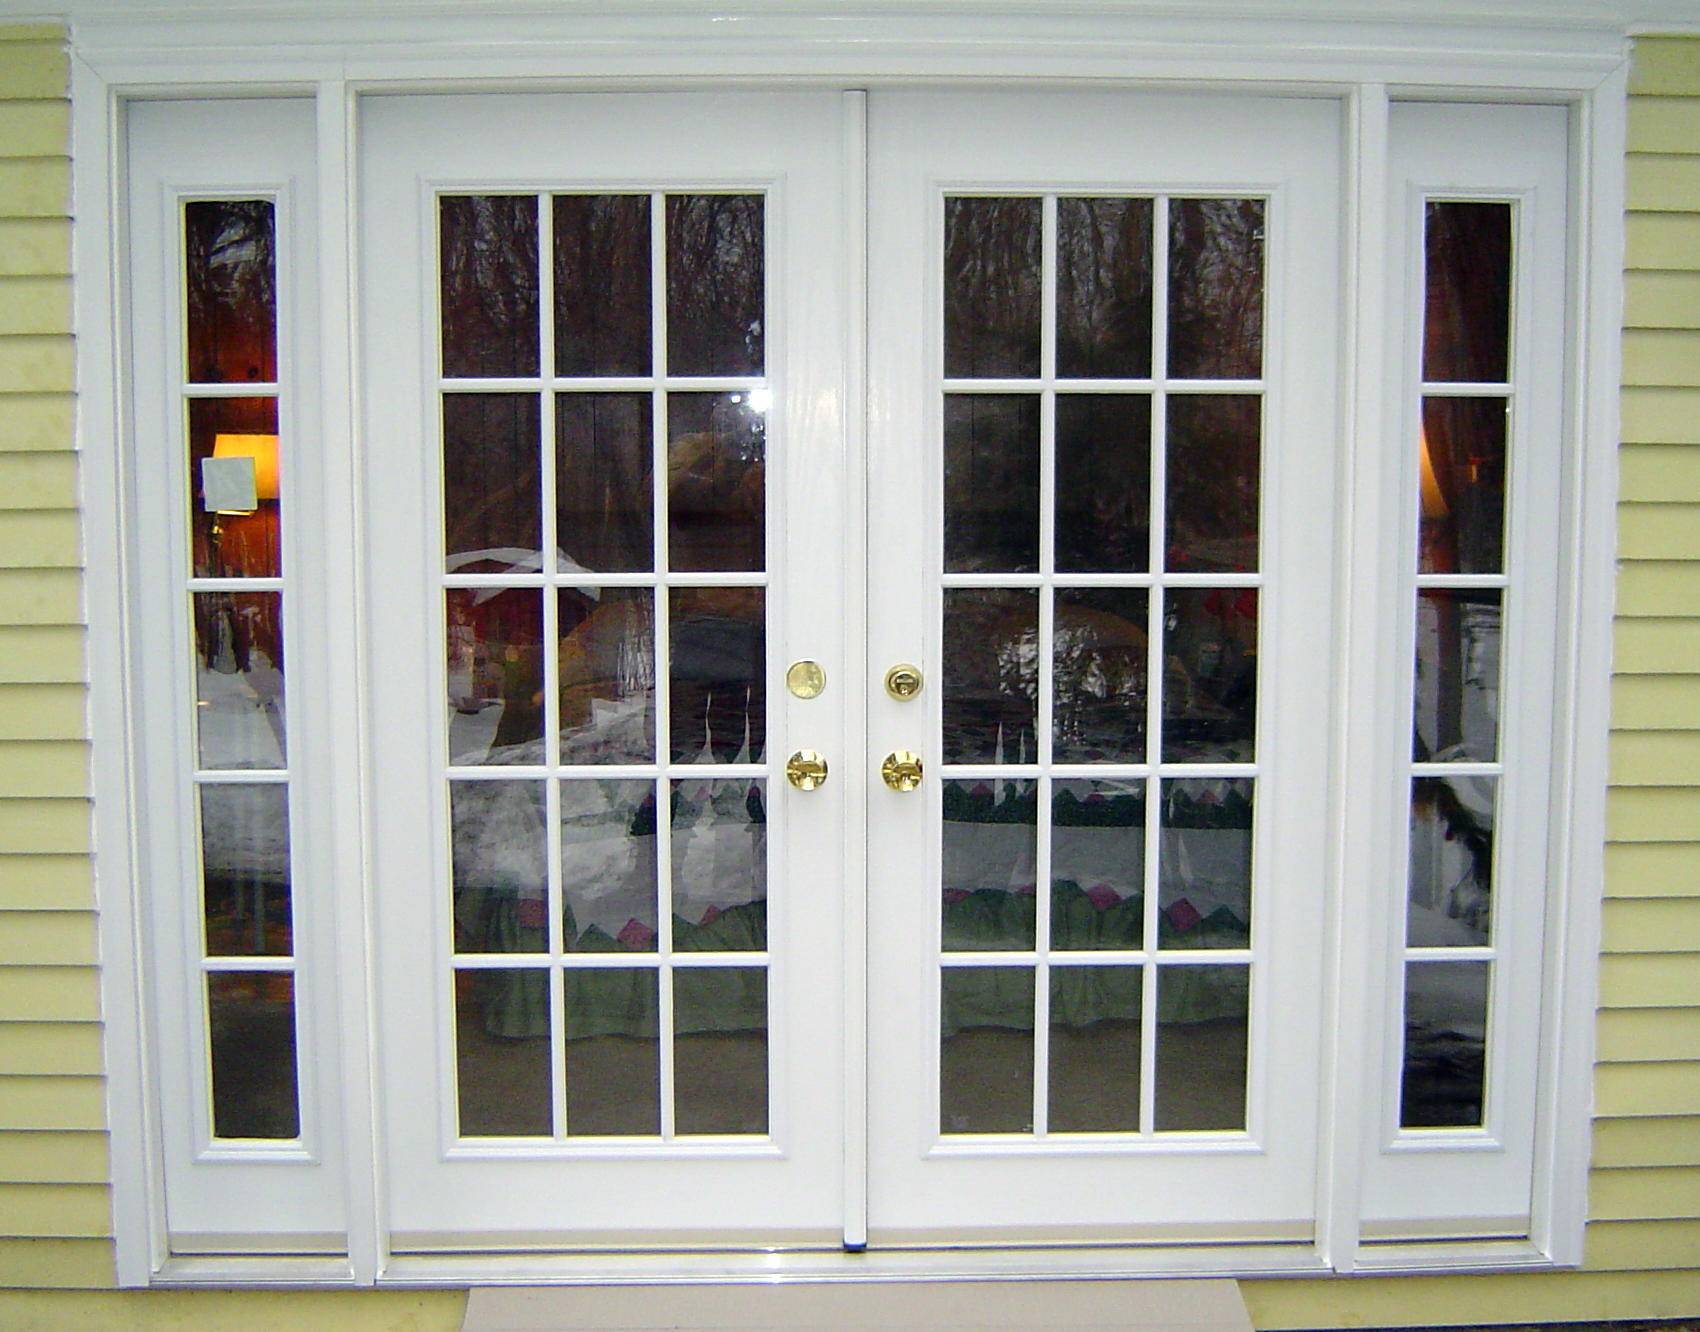 1332 #643C2D FIBERGLASS ENTRY DOORS AND FRENCH DOORS picture/photo Exterior Fiberglass Doors 39991700